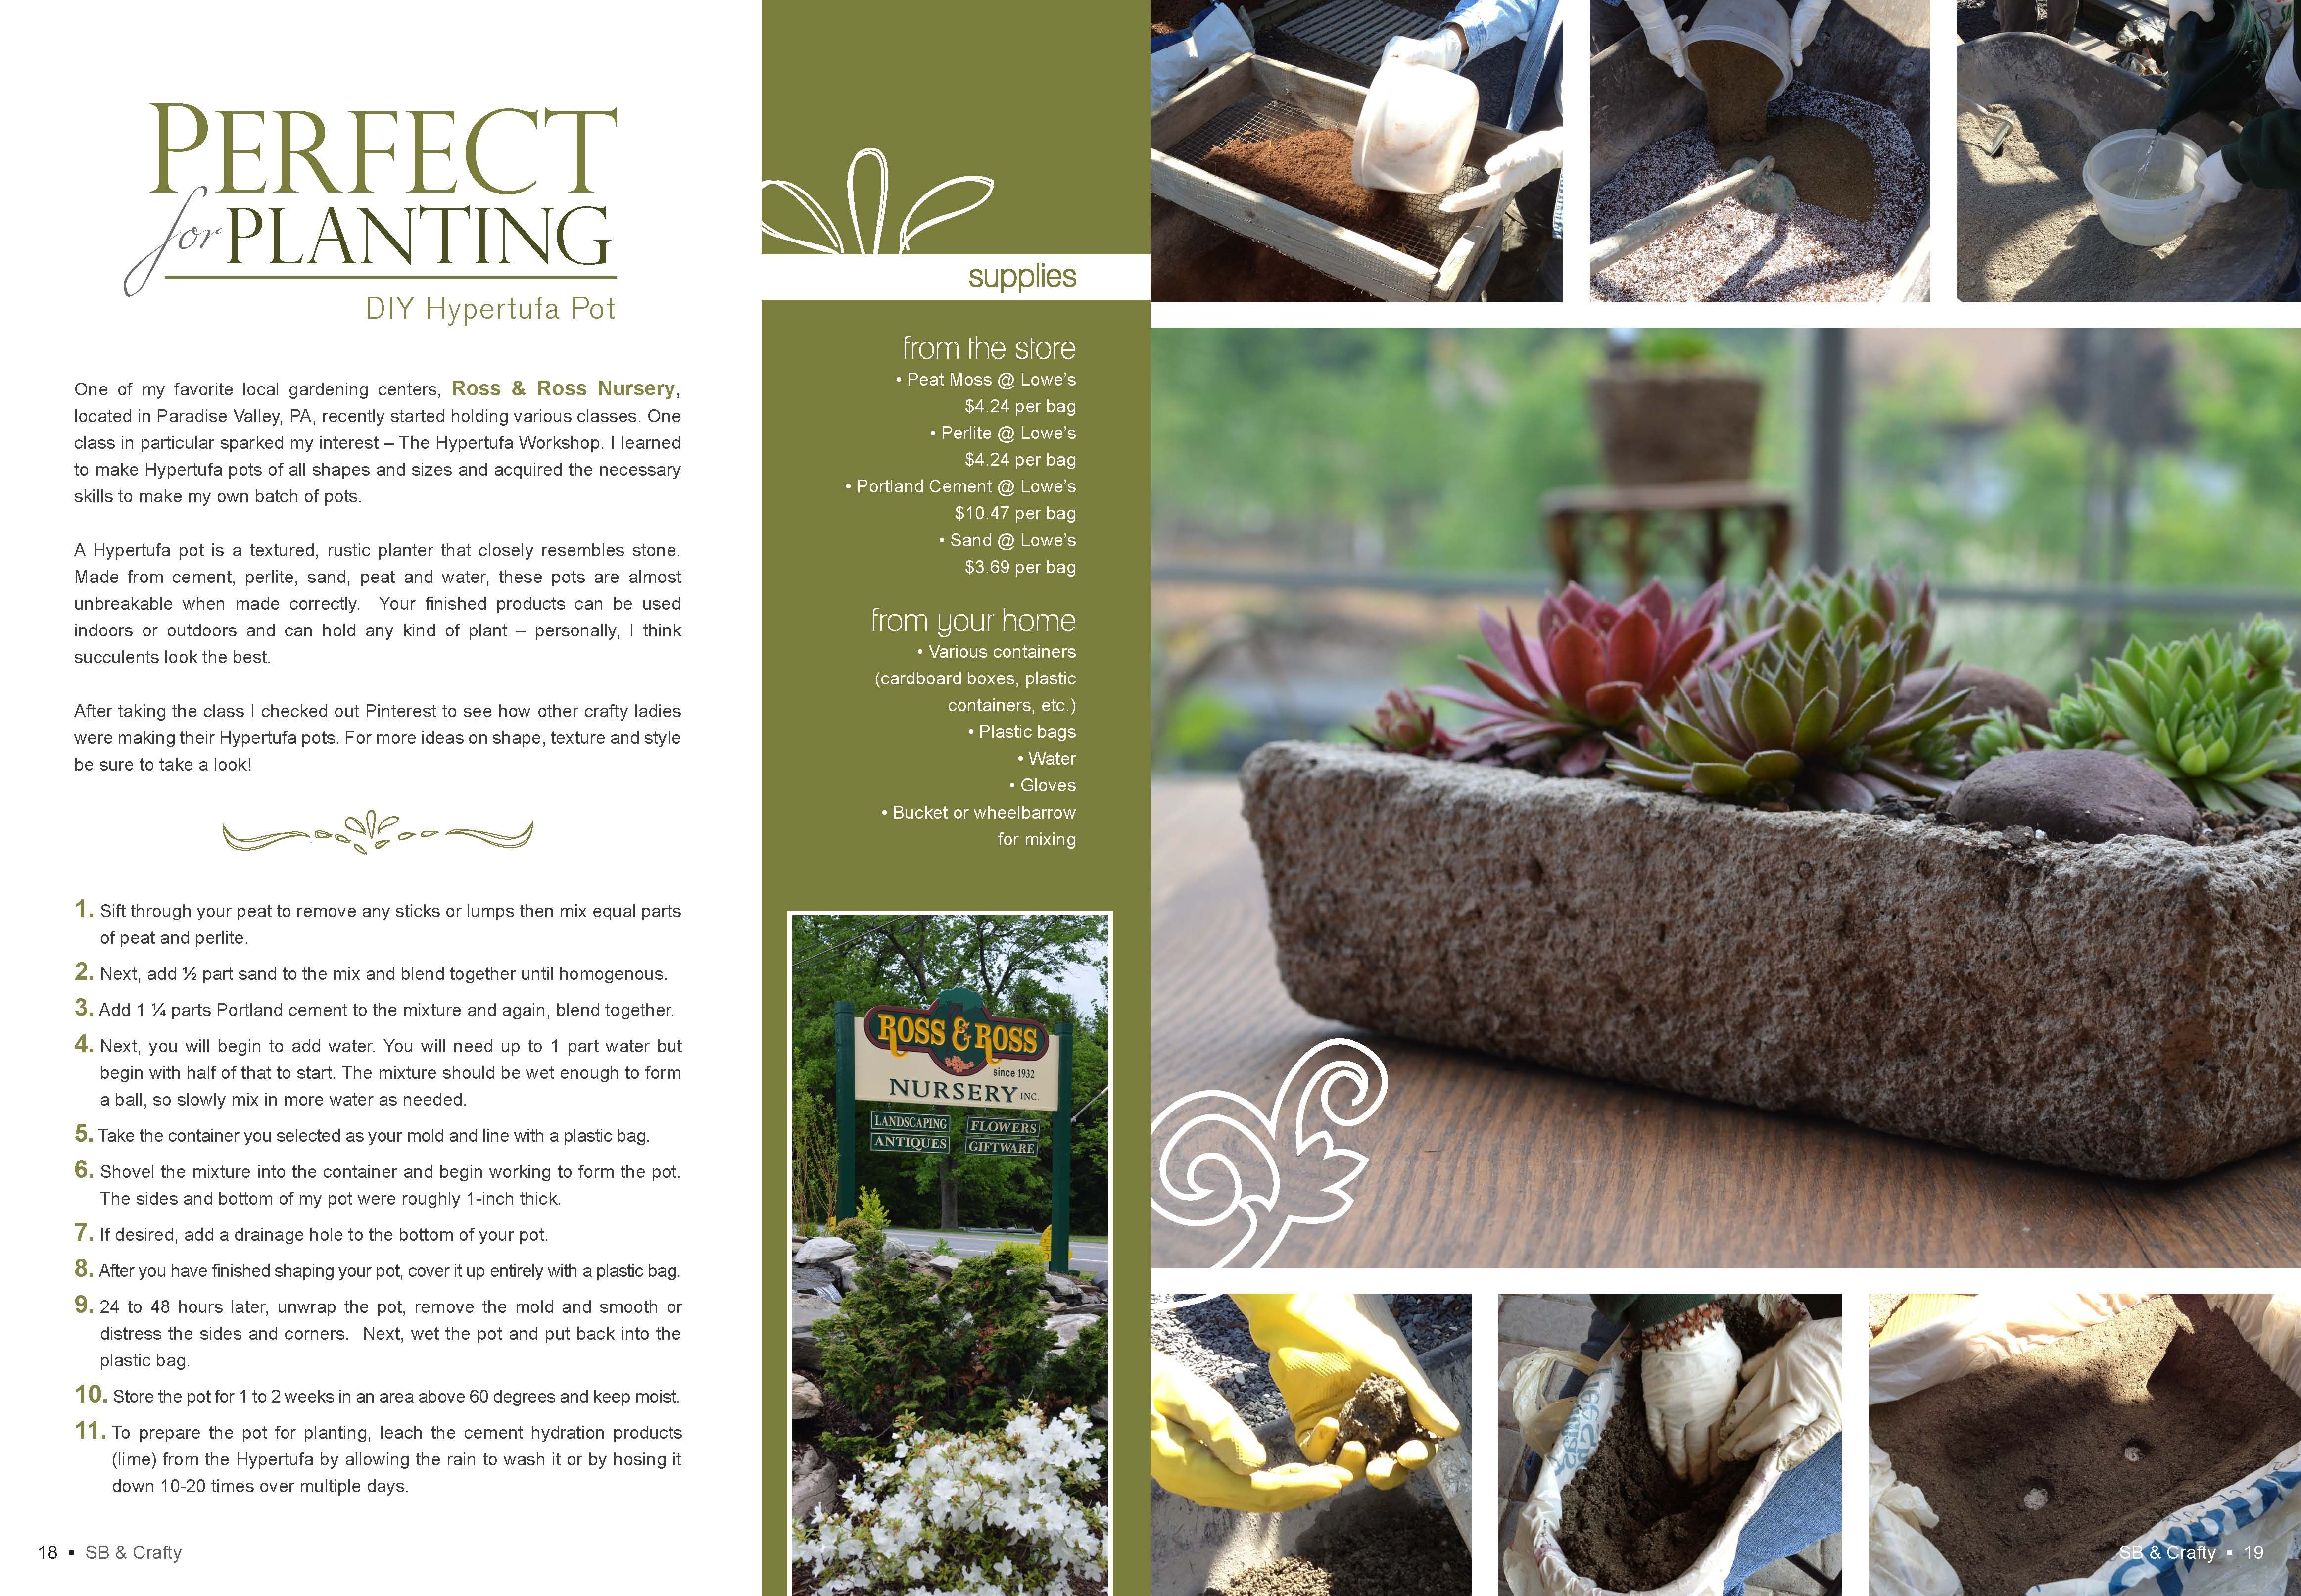 DIY Hypertufa Pot from the June/July 13 issue of Smart Blonde & Crafty Magazine. http://www.smartblondeandcrafty.com/diy-hypertufa-pot/